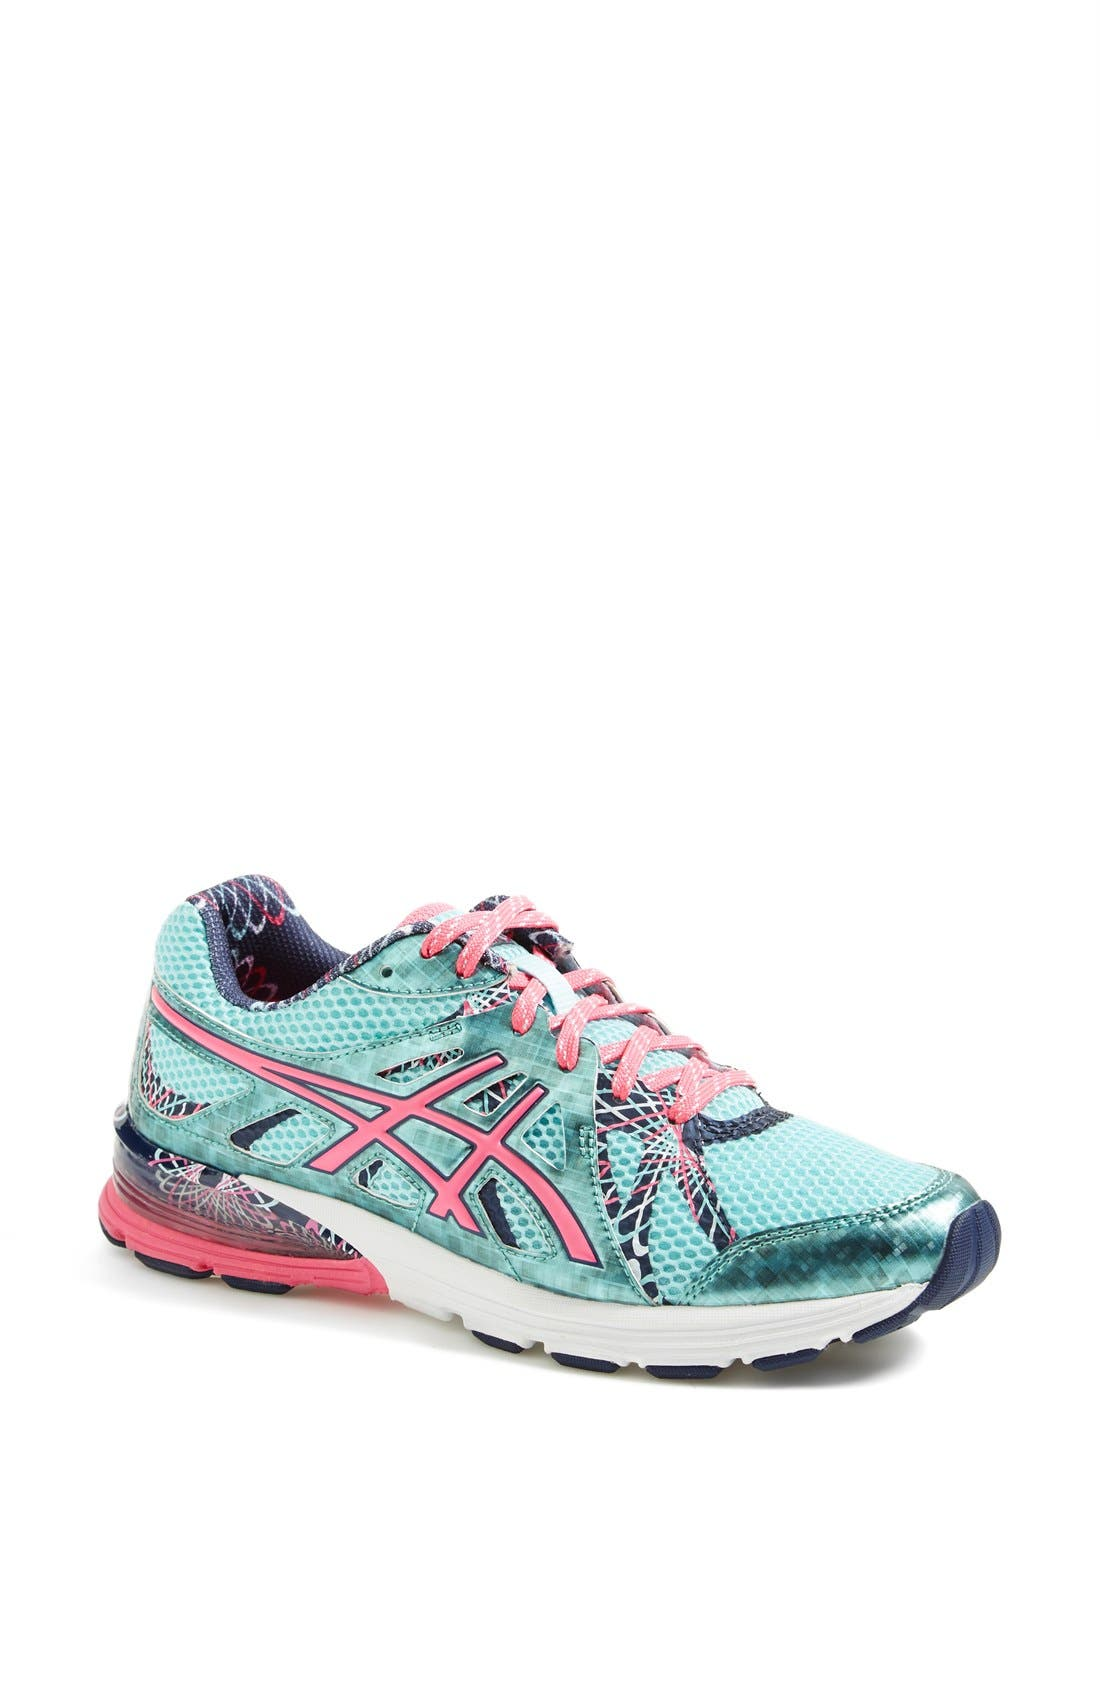 Alternate Image 1 Selected - ASICS® 'GEL-Preleus™' Running Shoe (Women)